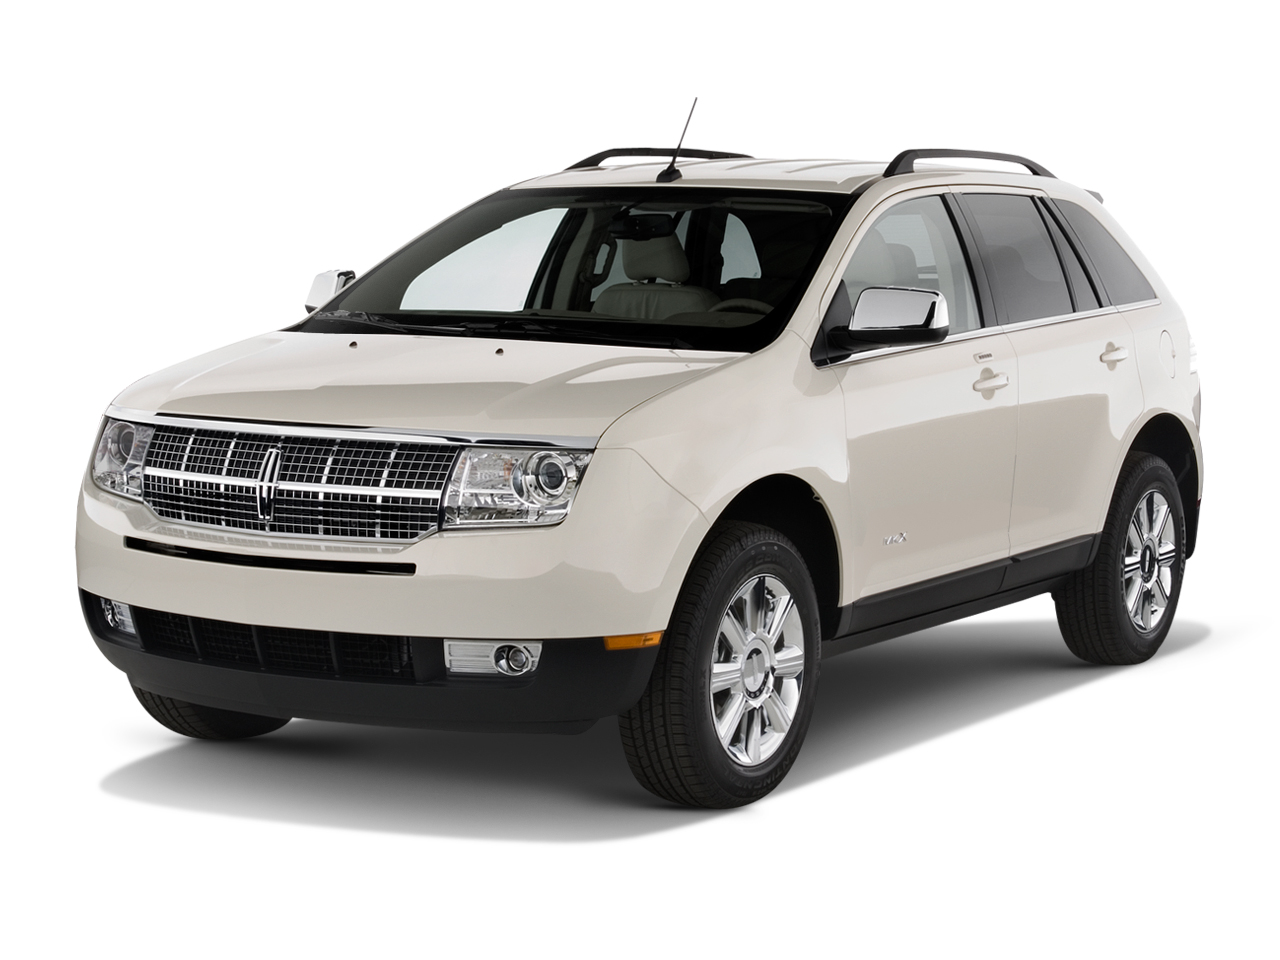 2010 lincoln mkx review ratings specs prices and photos the car connection. Black Bedroom Furniture Sets. Home Design Ideas